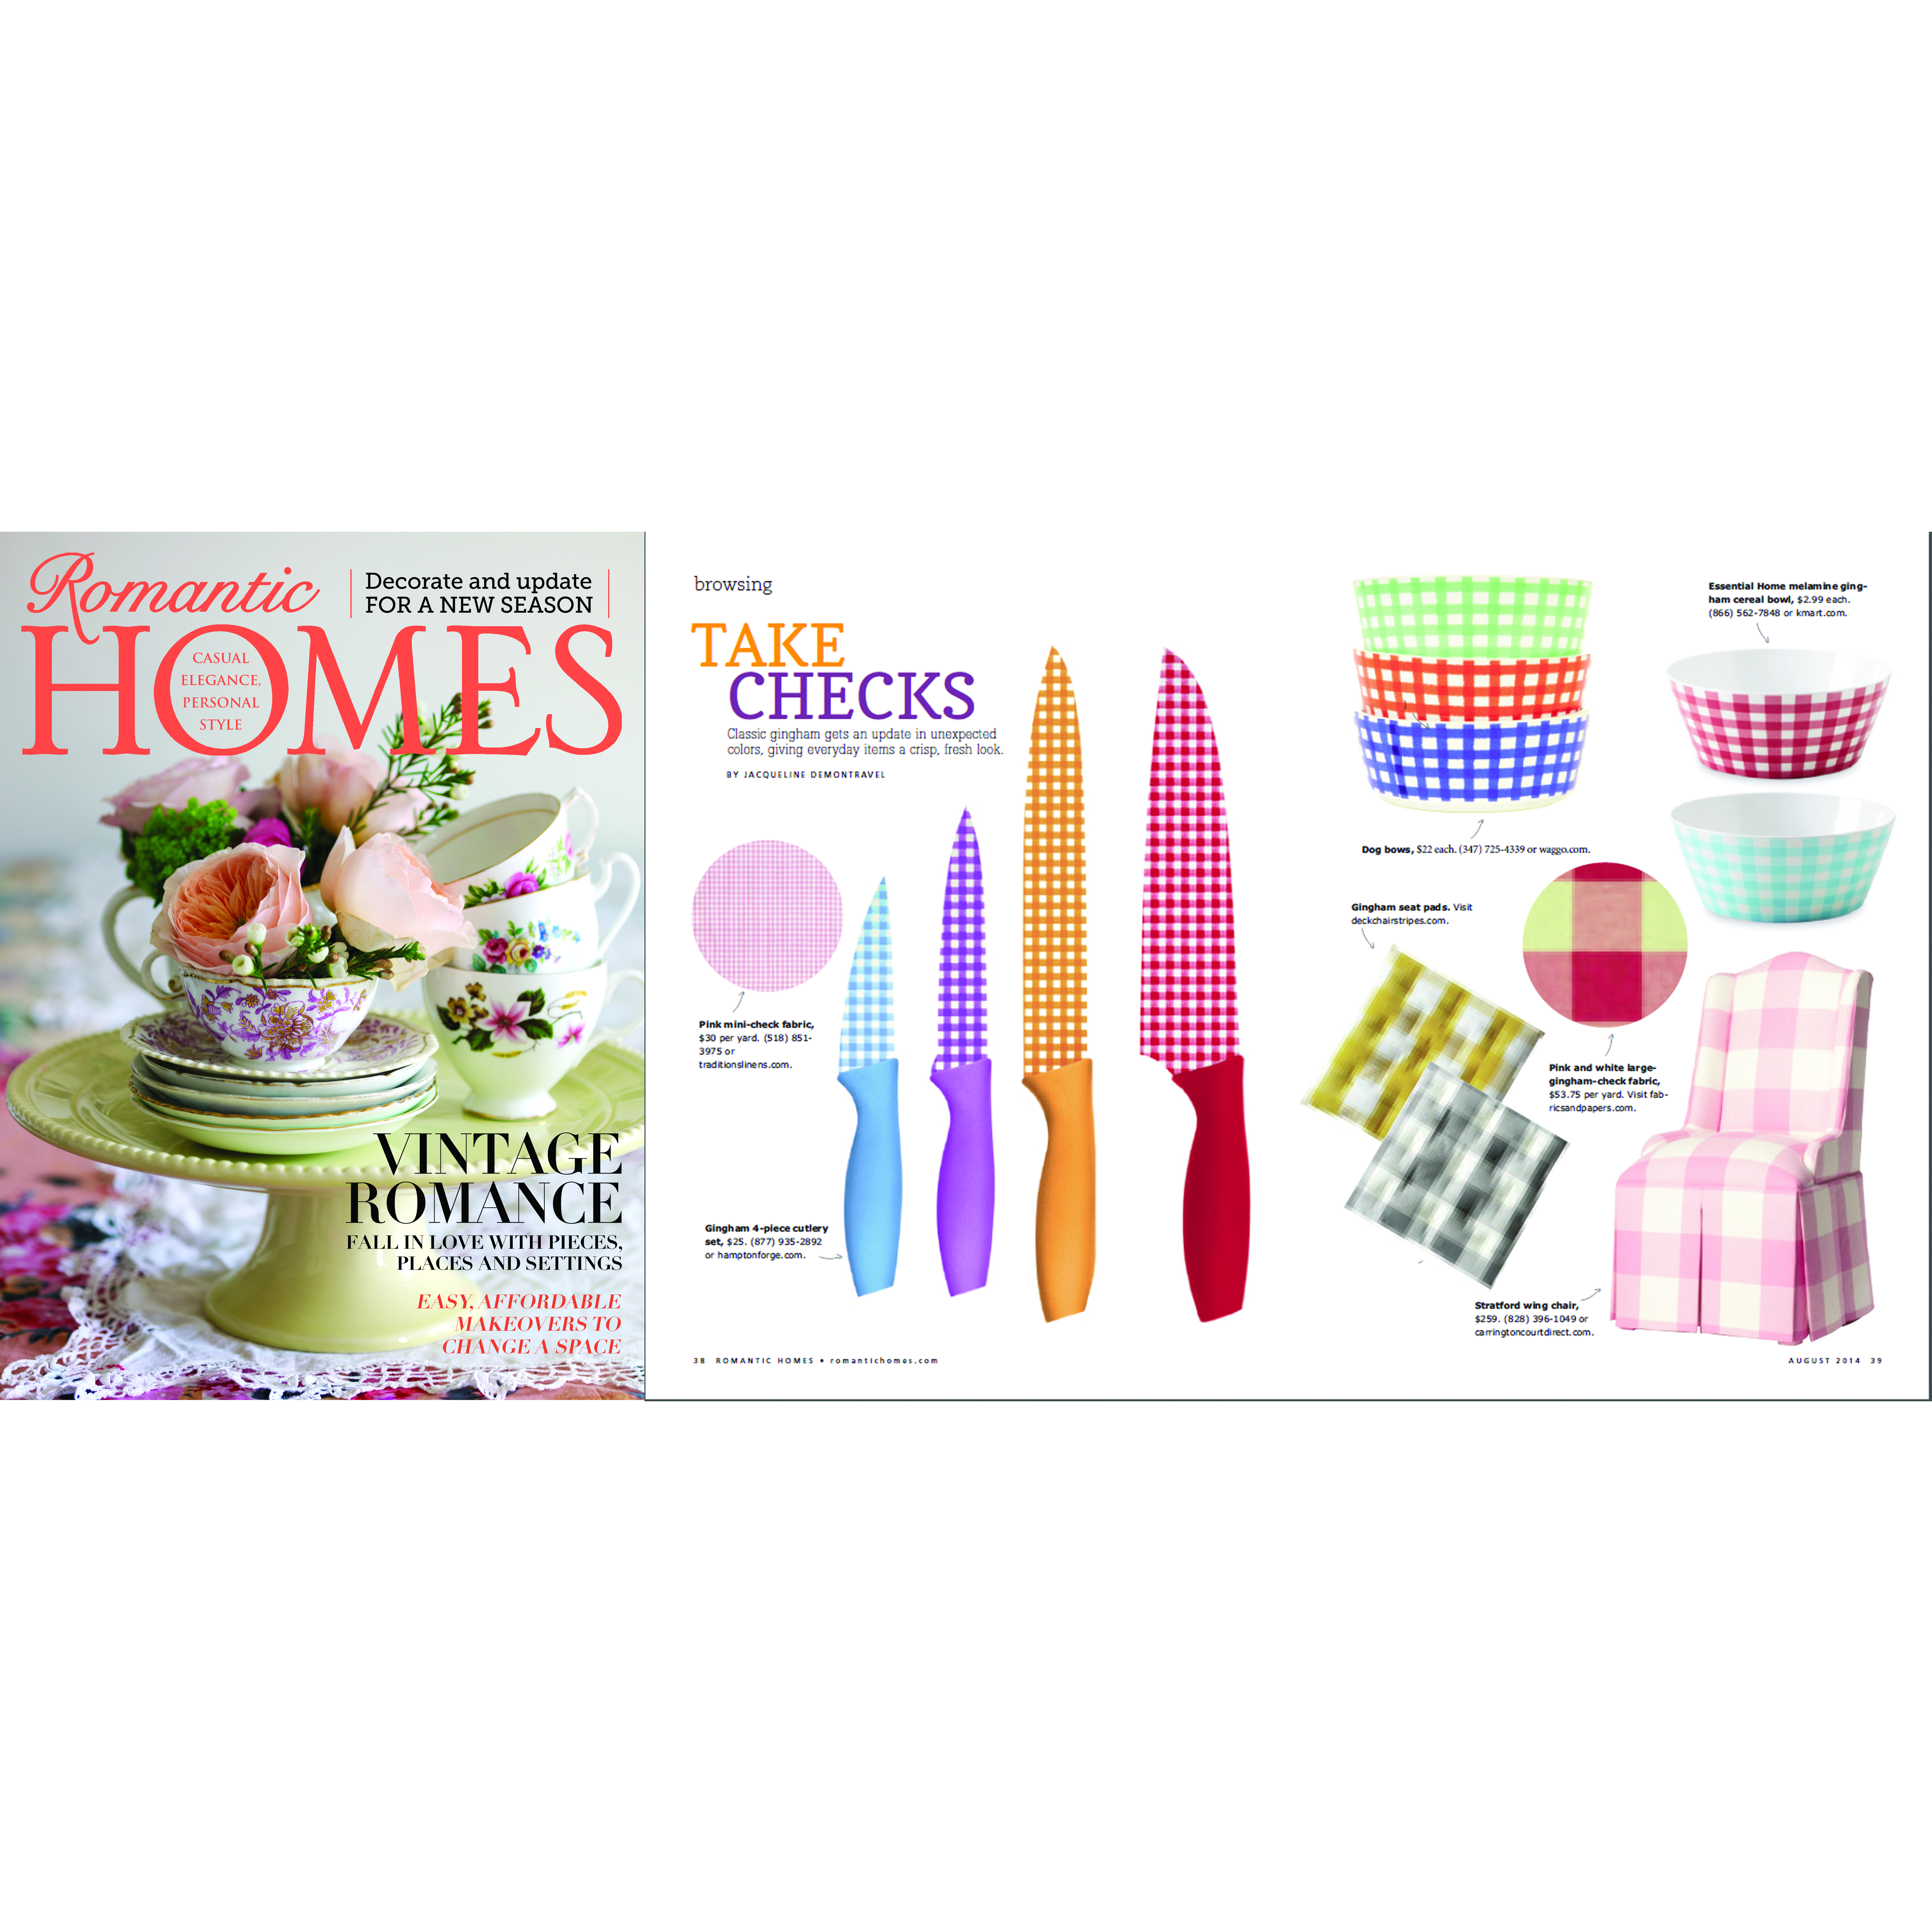 Romantic Homes August 2014 Designer Gingham Ceramic Dog Bowls